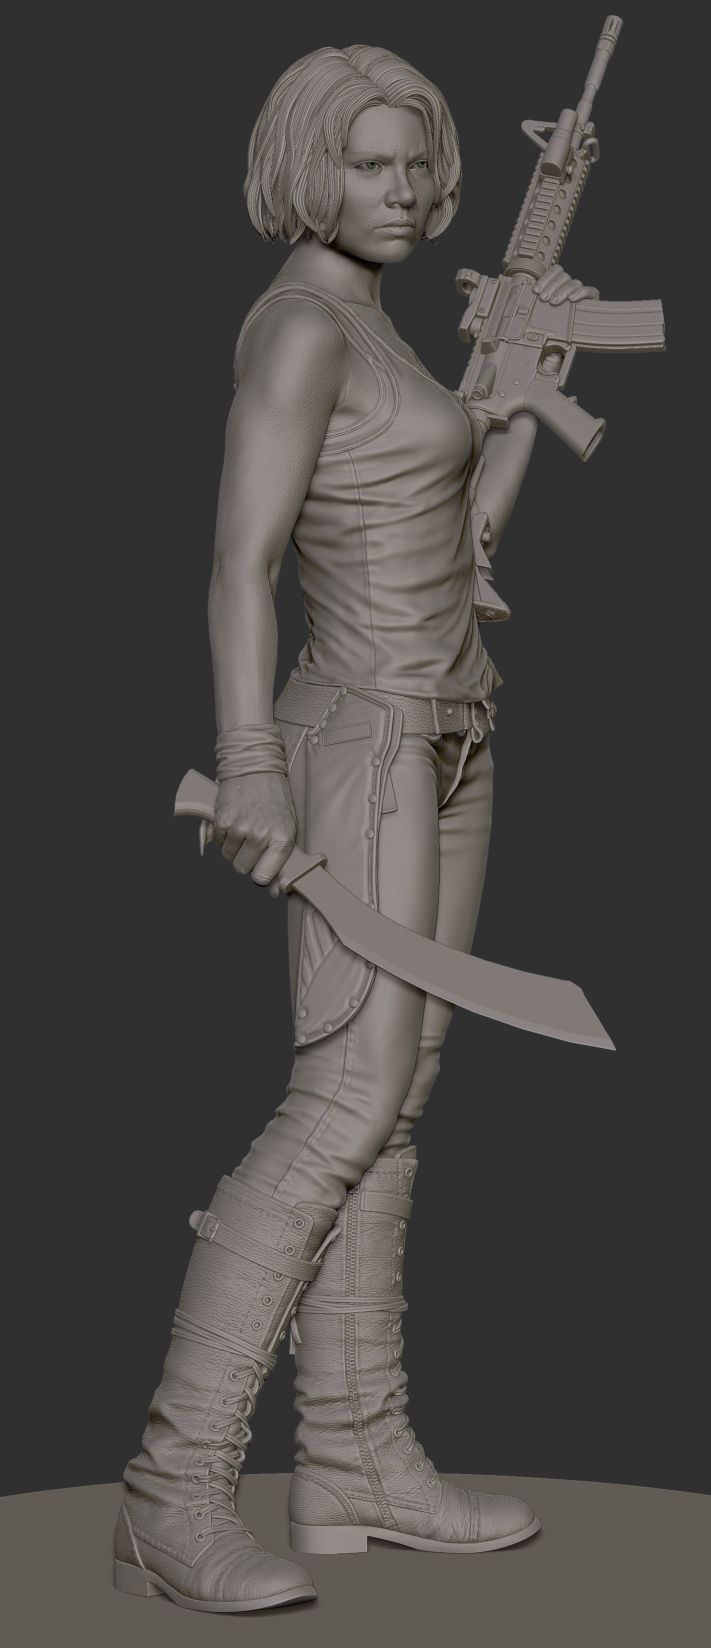 http://www.zbrushcentral.com/showthread.php?151792-Will-Harbottle-Digital-Sculpt-Thread/page22